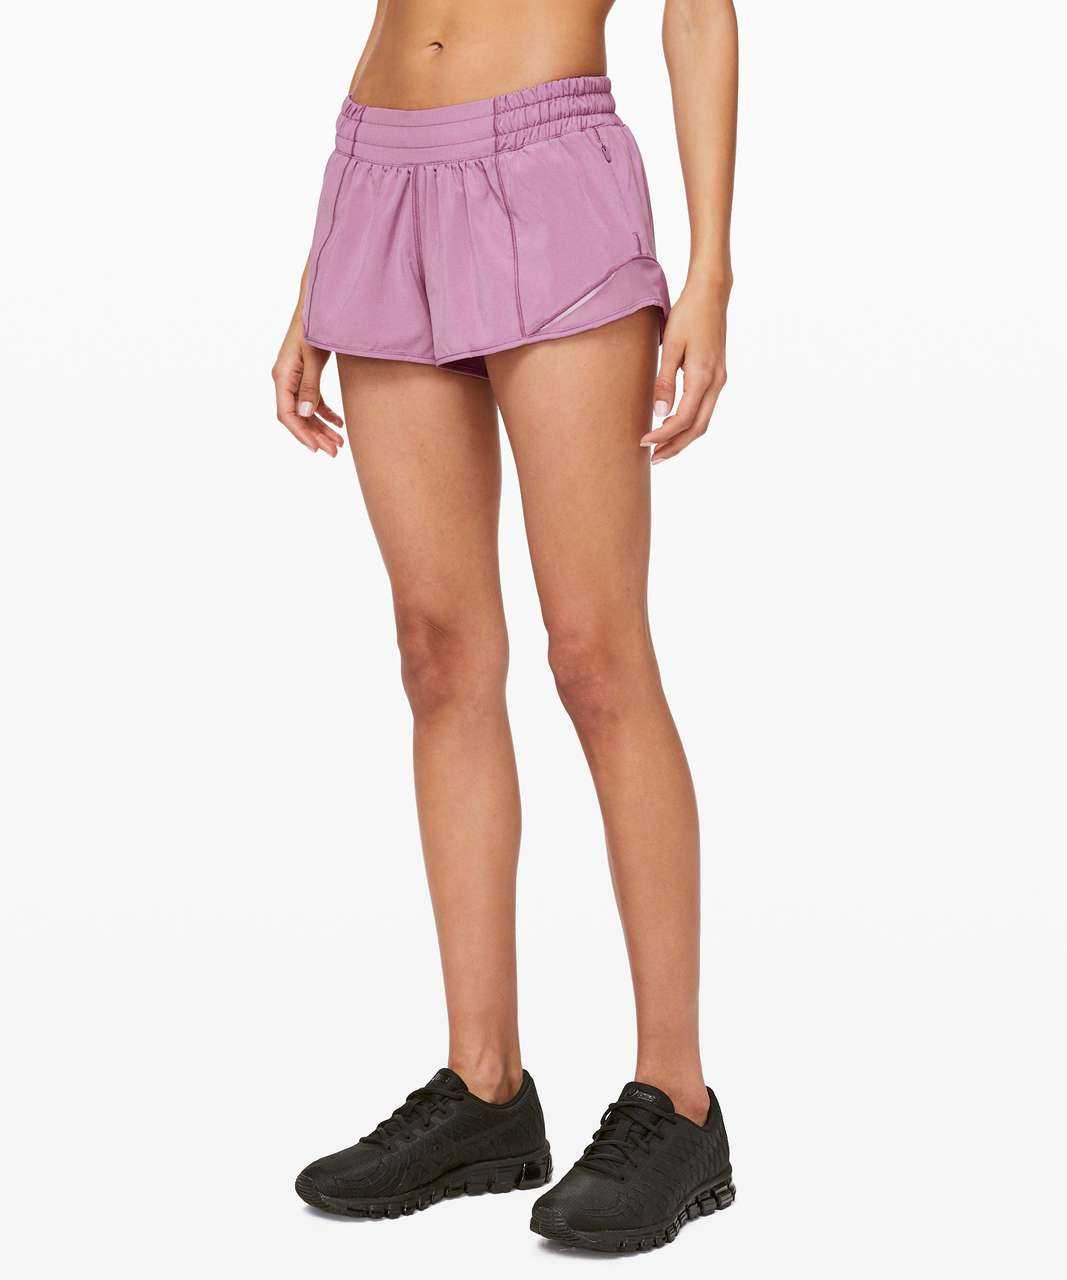 "Lululemon Hotty Hot Short II *2.5"" - Jubilee"